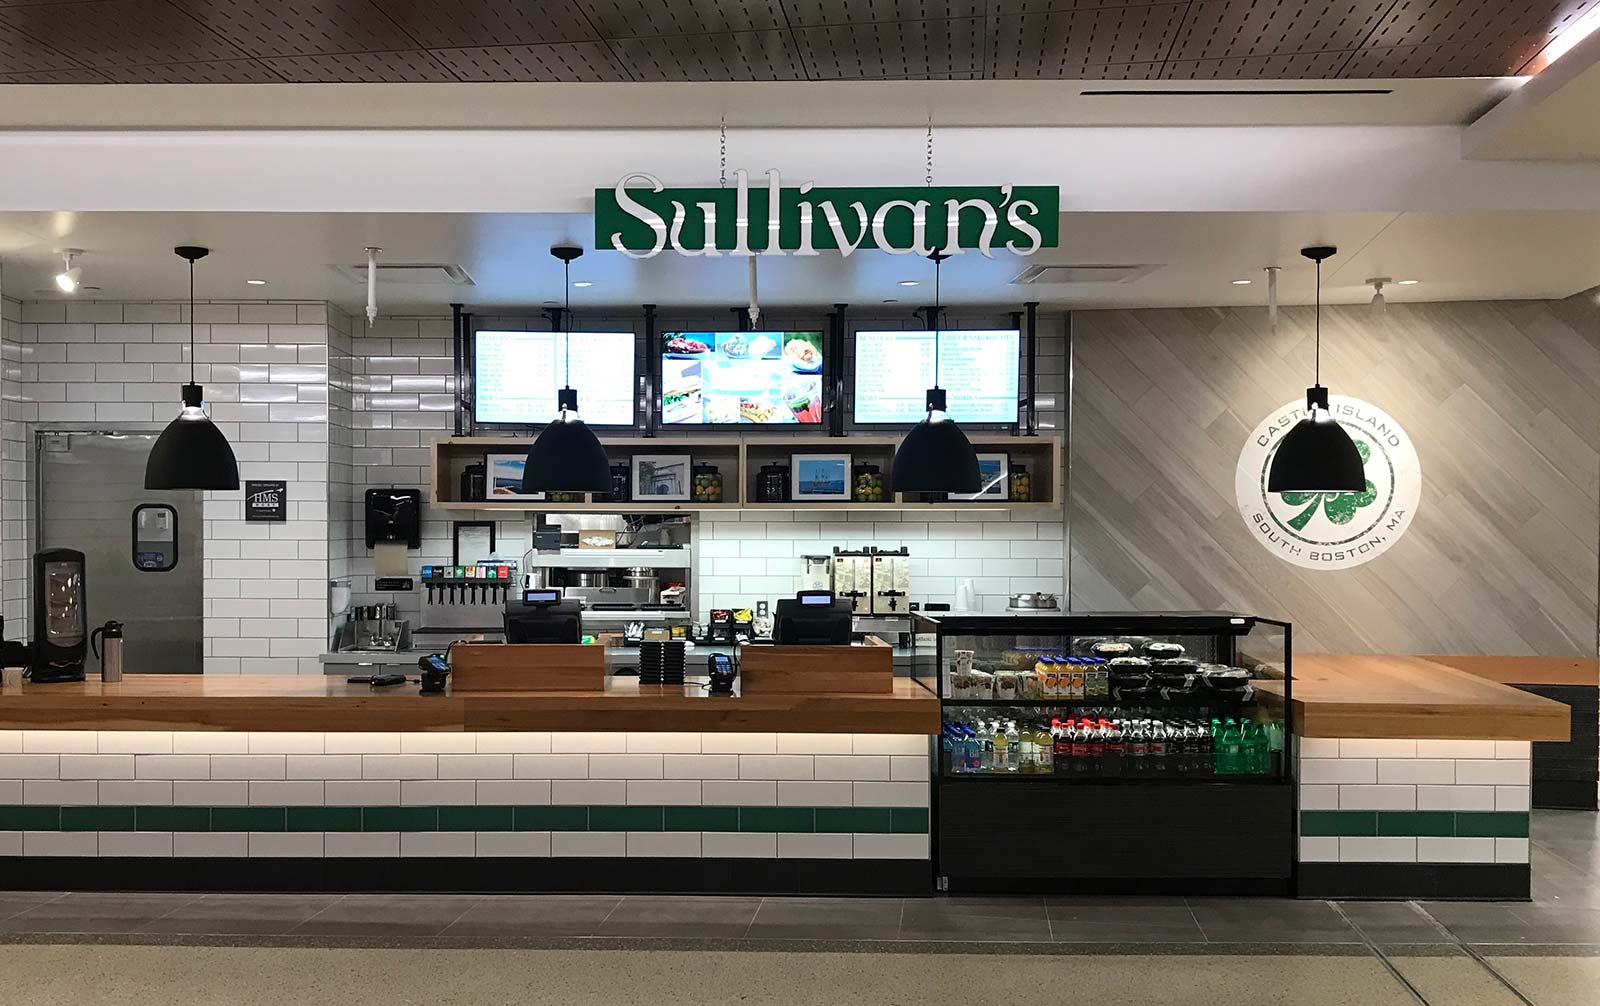 Sullivan's Boston Logan Airport